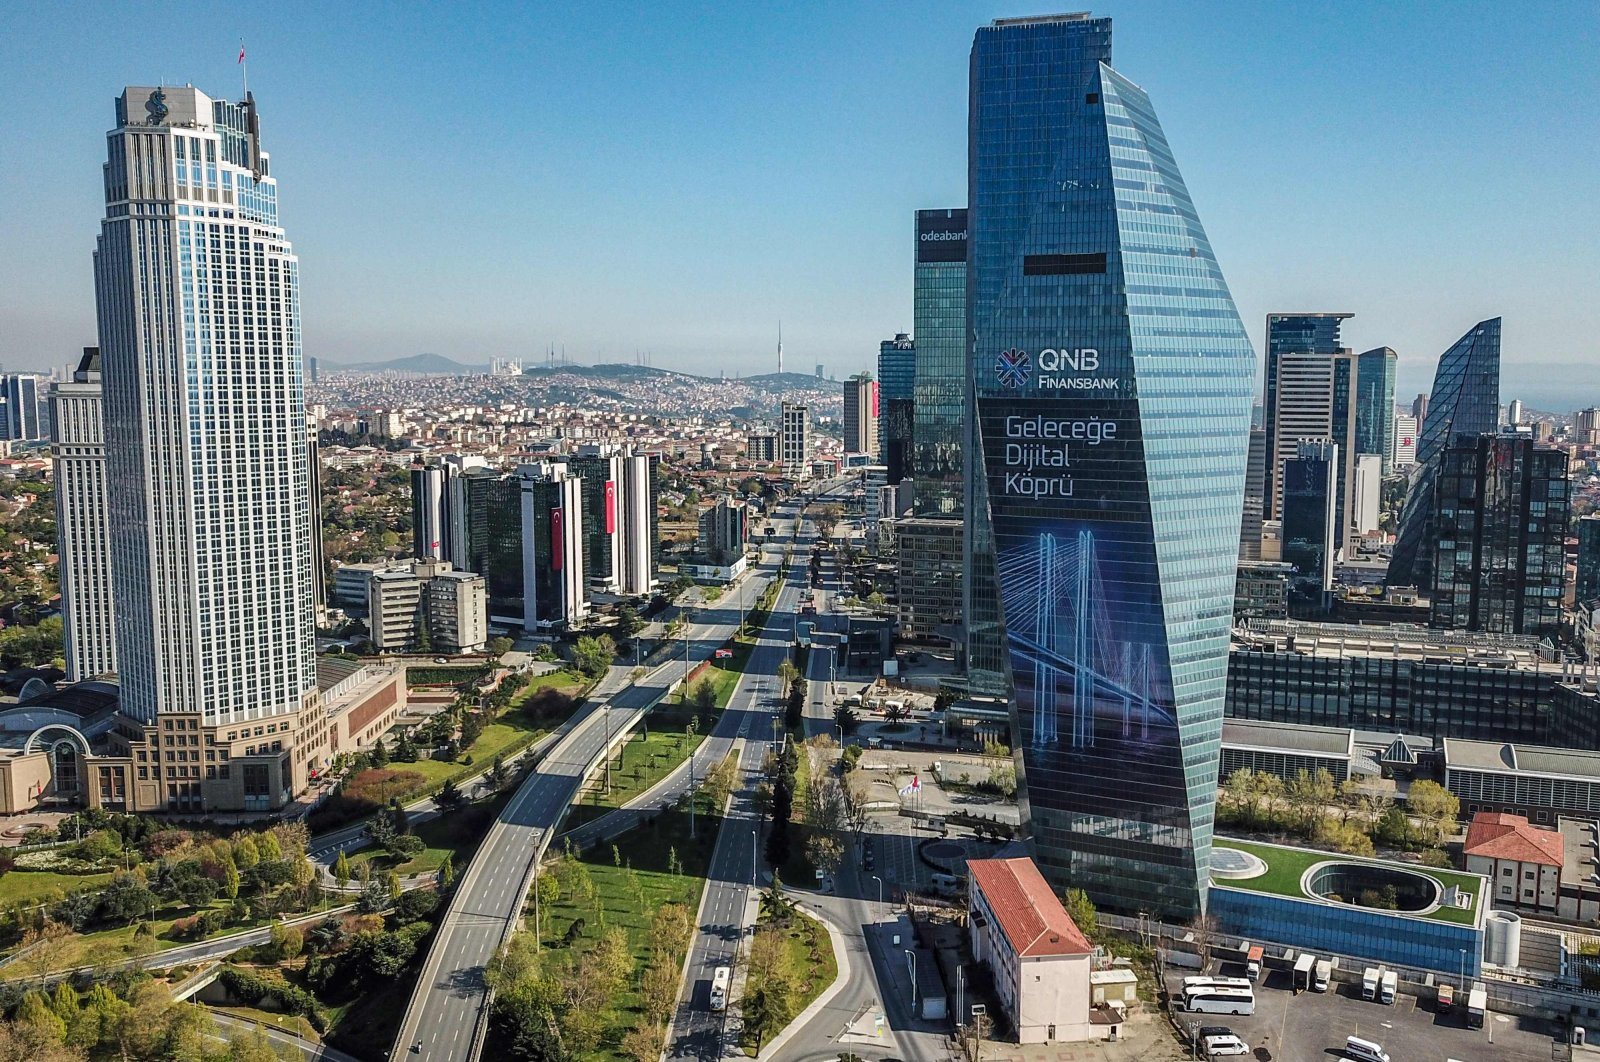 The financial district of Levent in Istanbul, Turkey, is seen in this aerial picture taken on April 25, 2020. (AFP Photo)